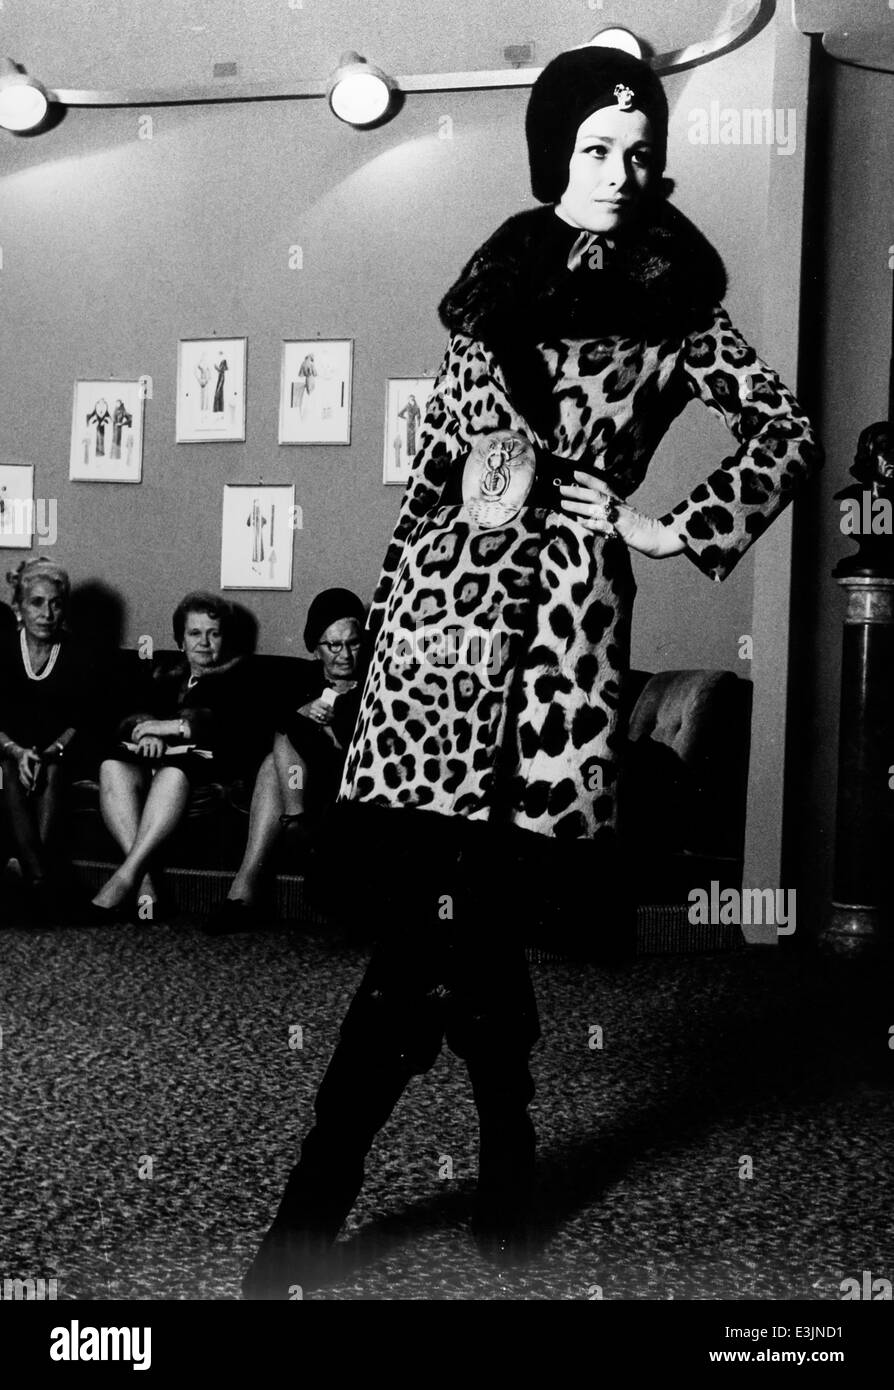 model during a fashion show in 60's - Stock Image